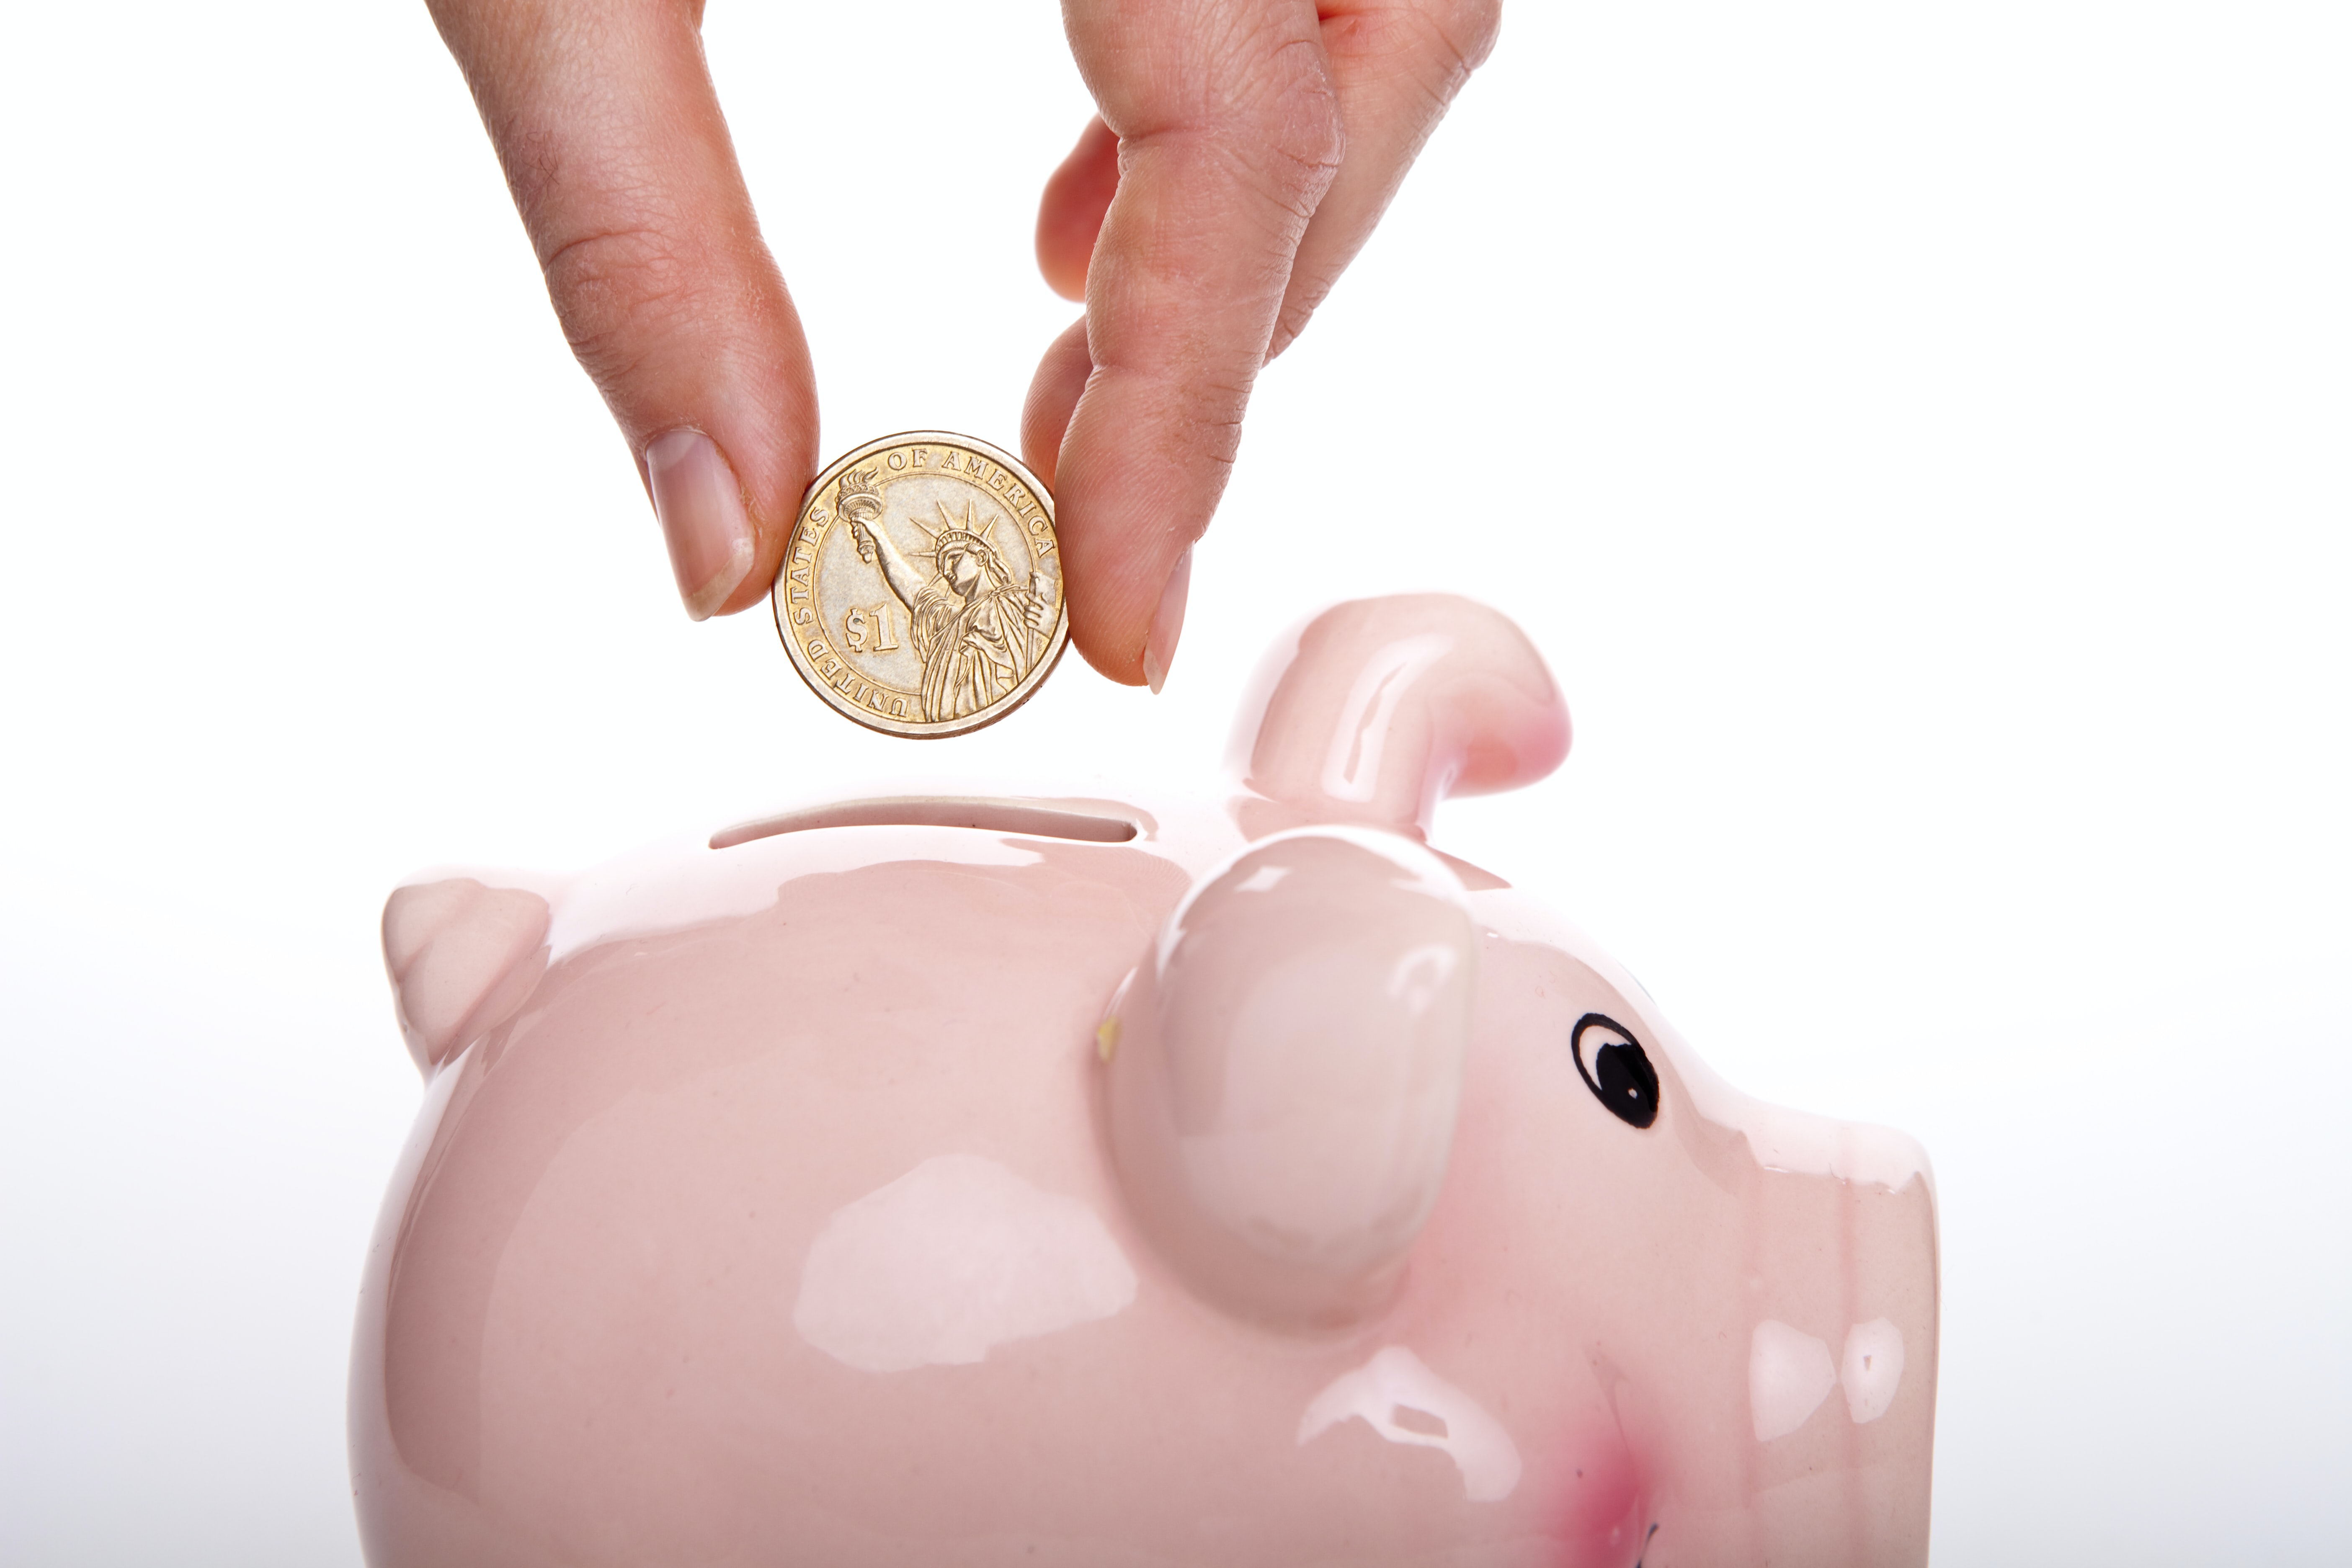 31% of U.S. Households Have Used Up Their Savings